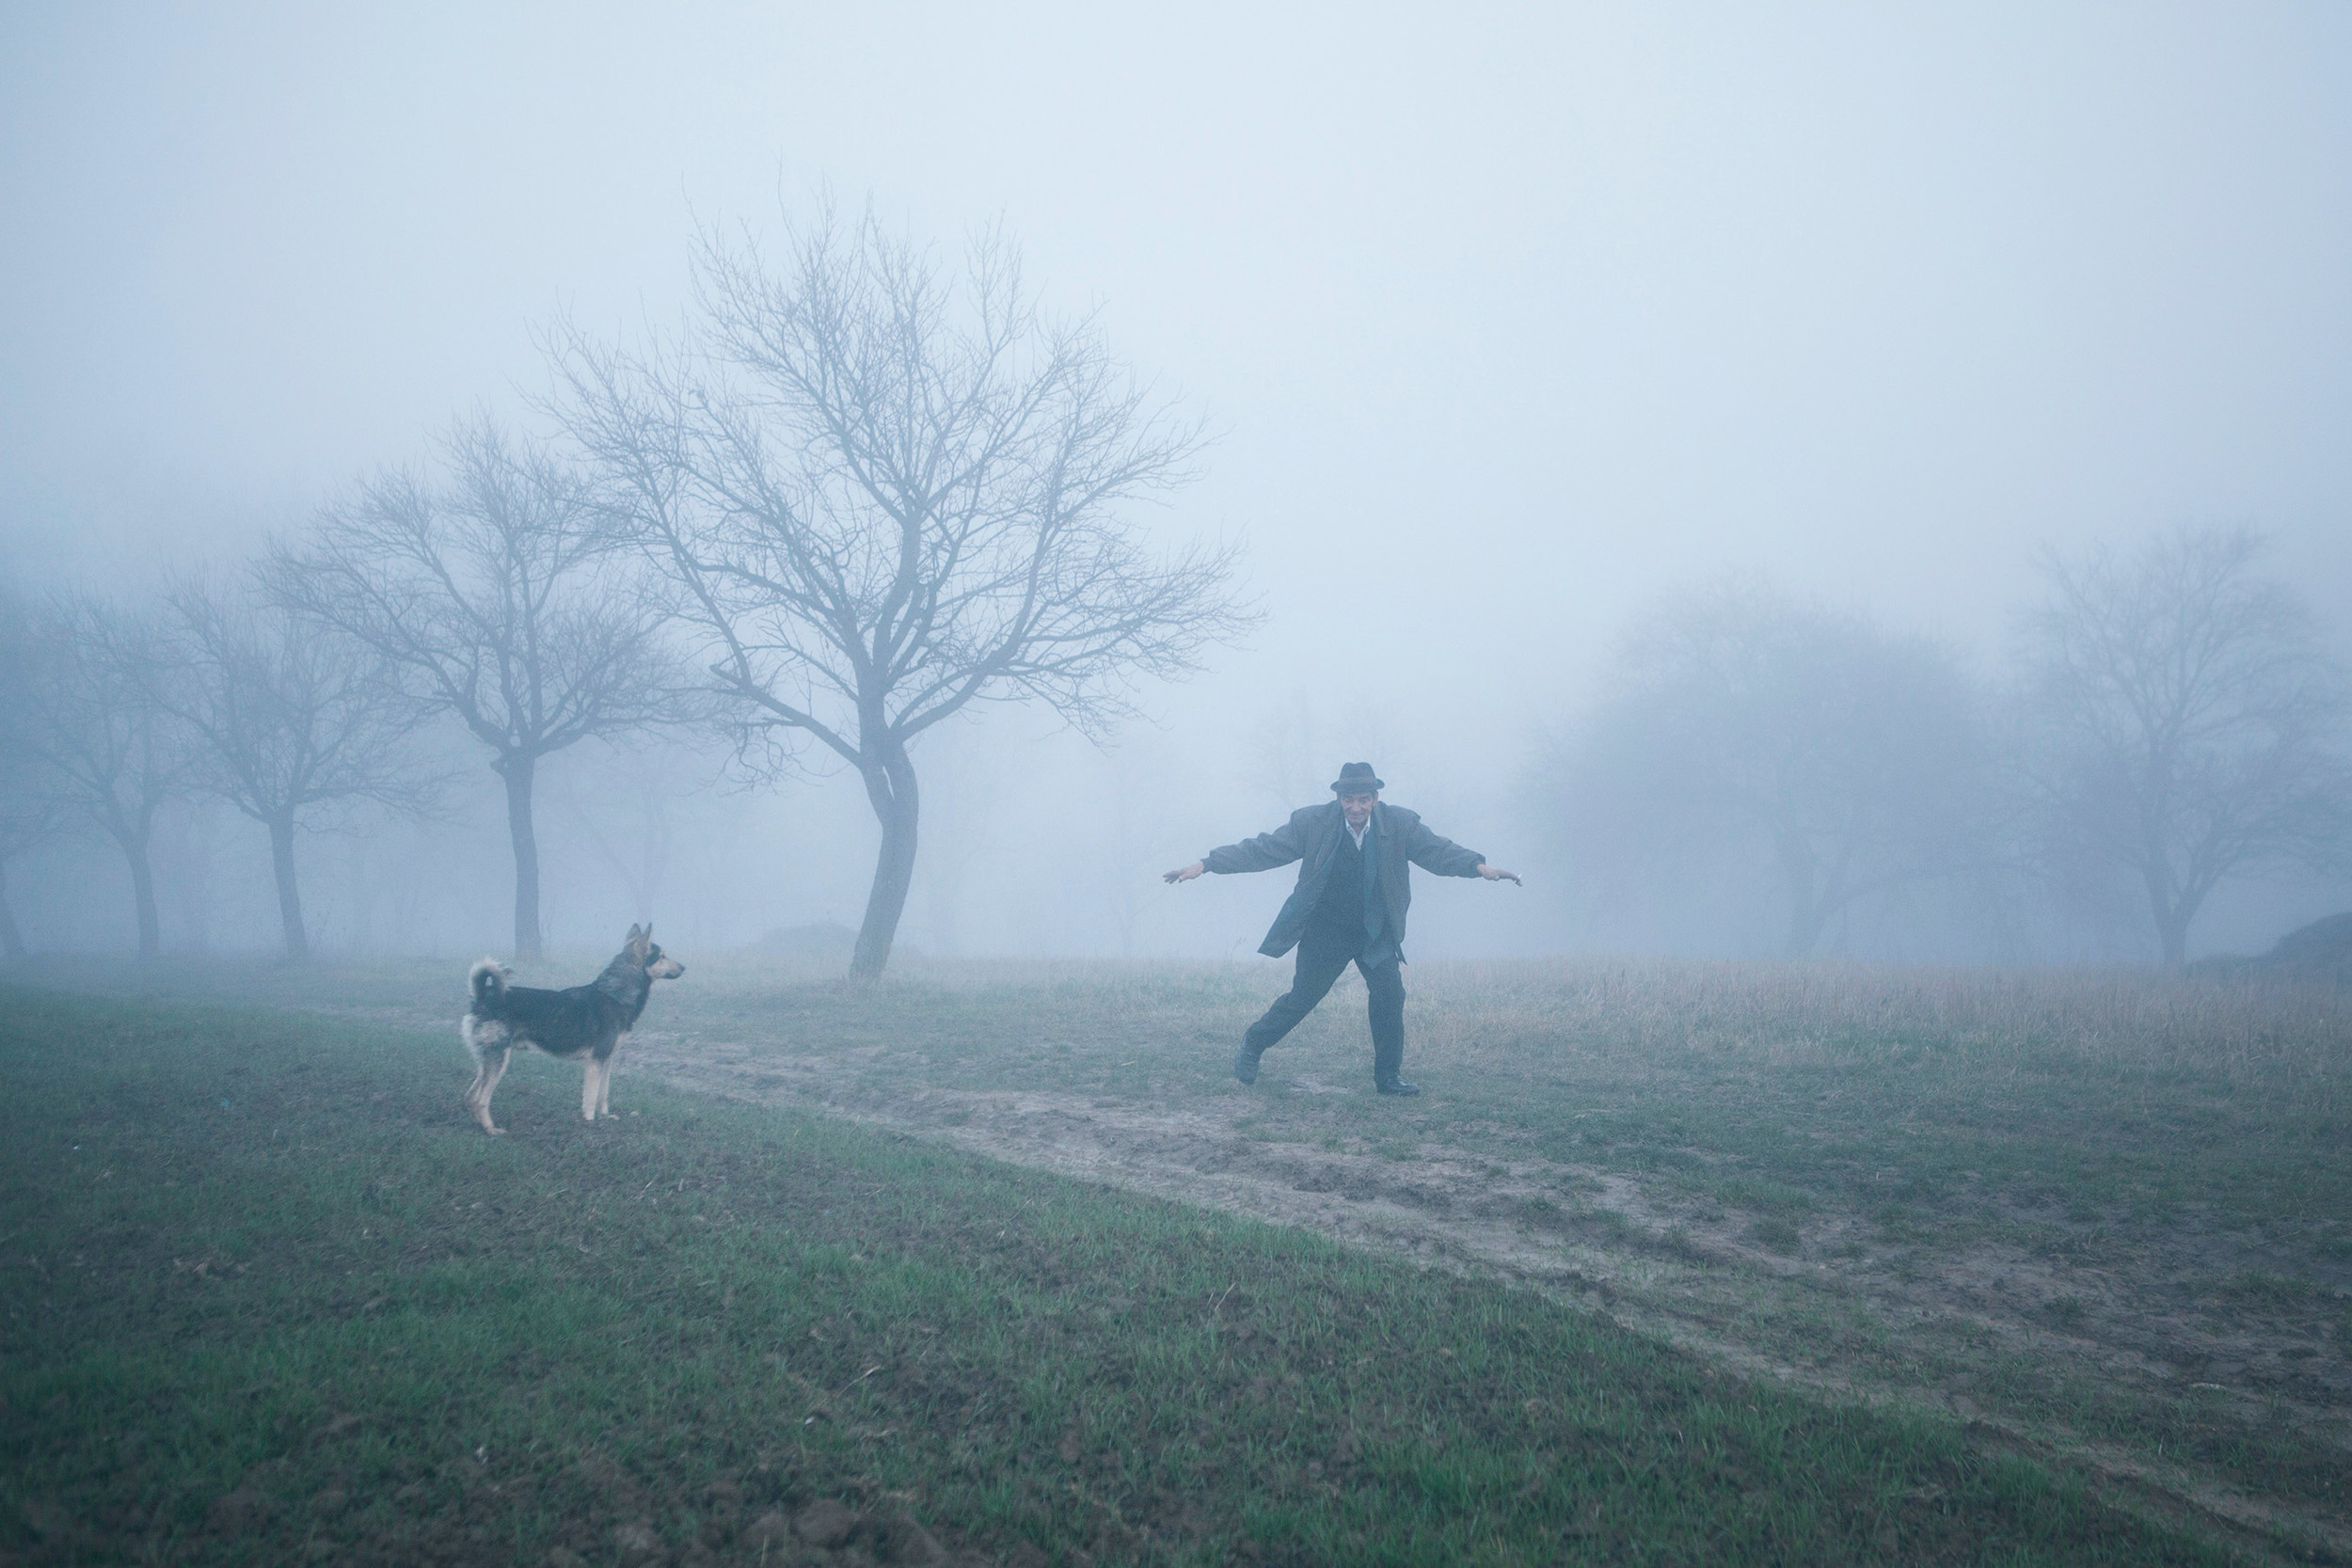 Romanian man chasing his dog in the fog